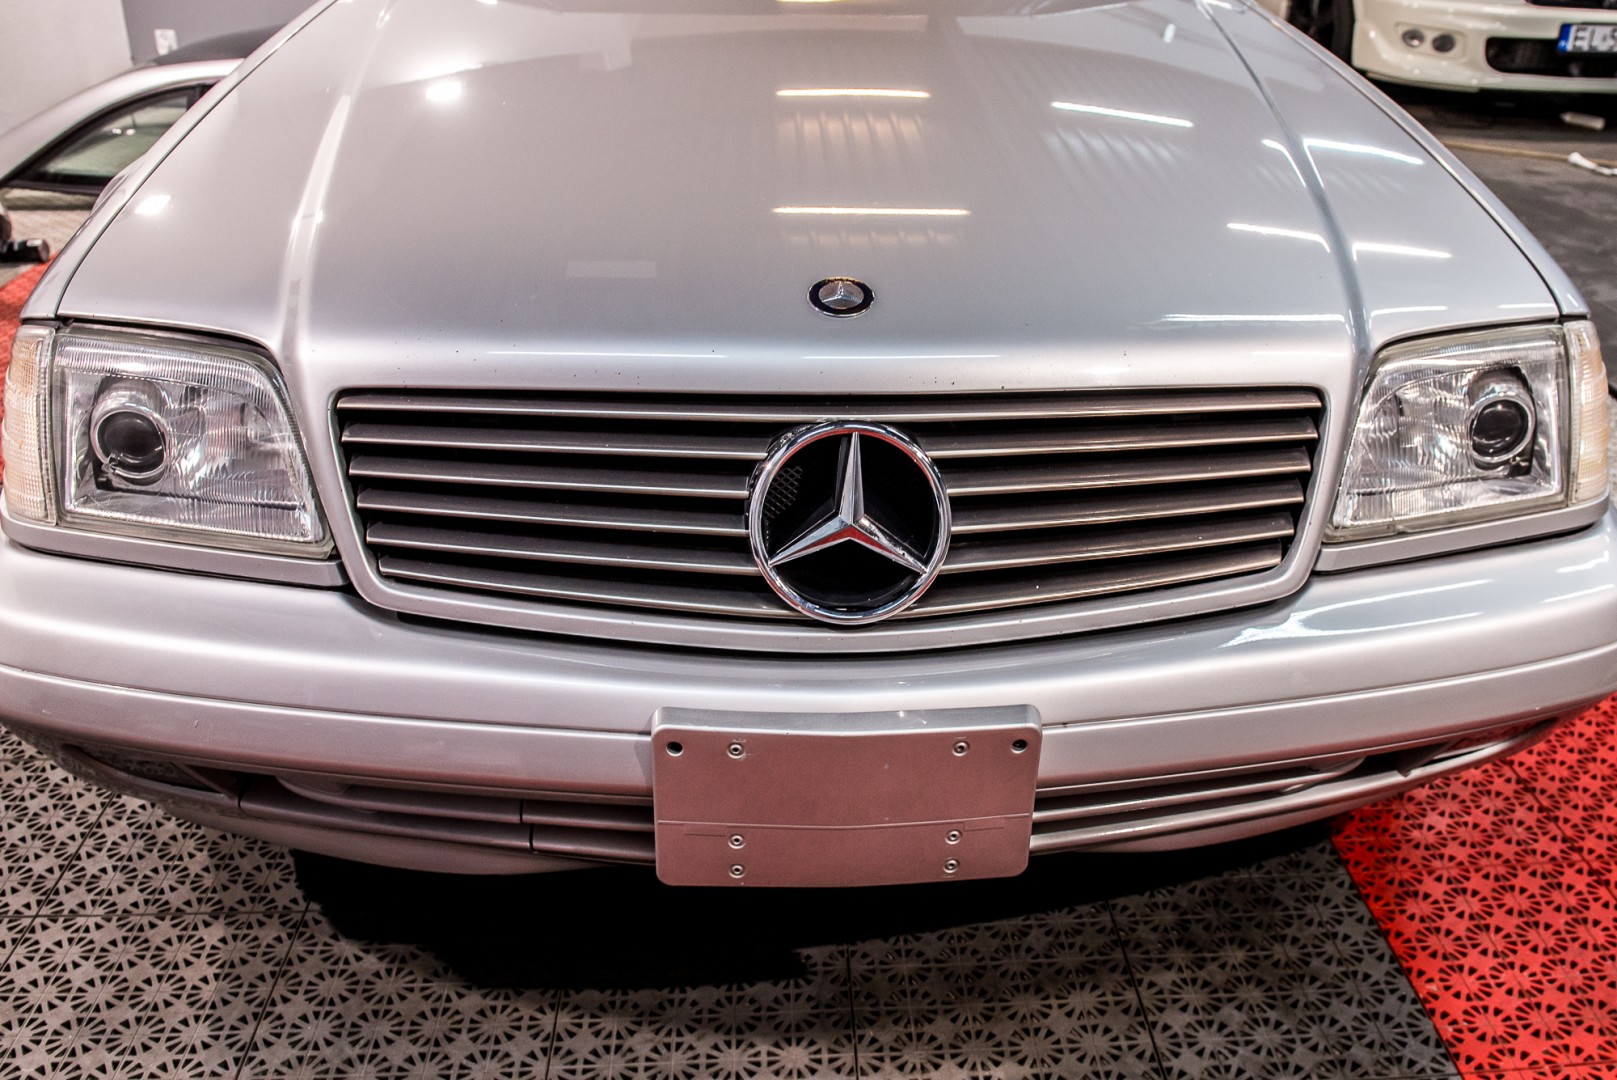 Mercedes 500SL, Panoramic hardtop, 1999, 105.000 mil on odometer - MBB Collection